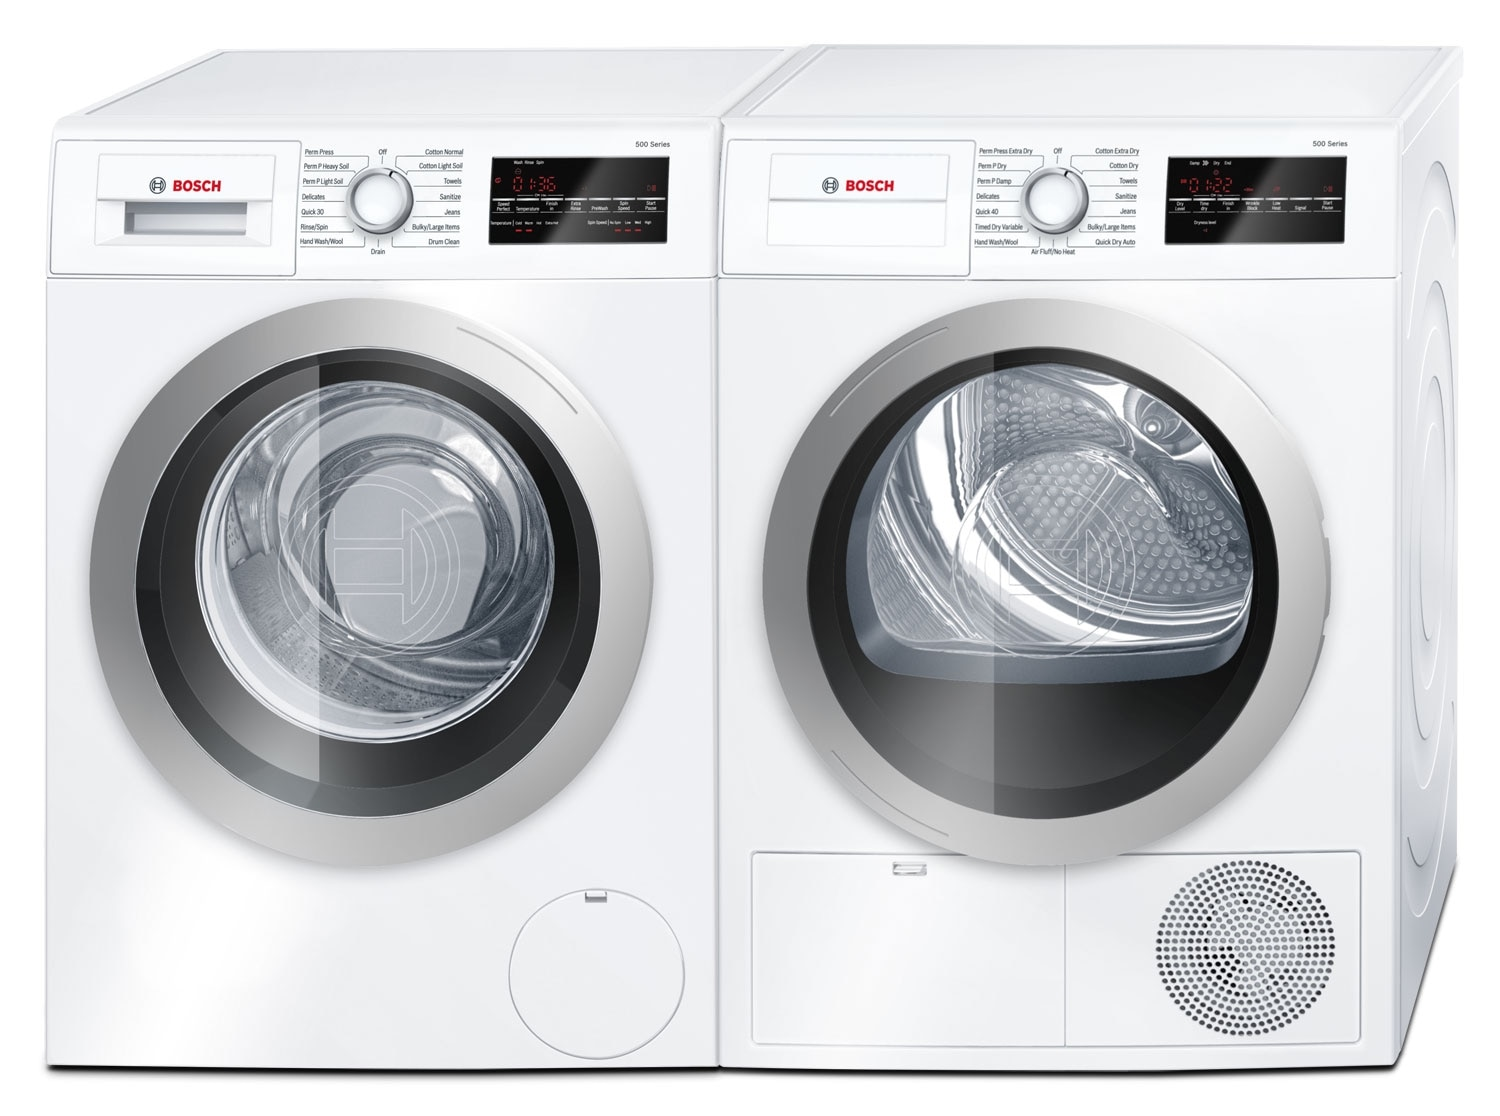 Washers and Dryers - Bosch 500 Series 2.2 Cu. Ft. Compact Washer and 4.0 Cu. Ft. Compact Dryer – White